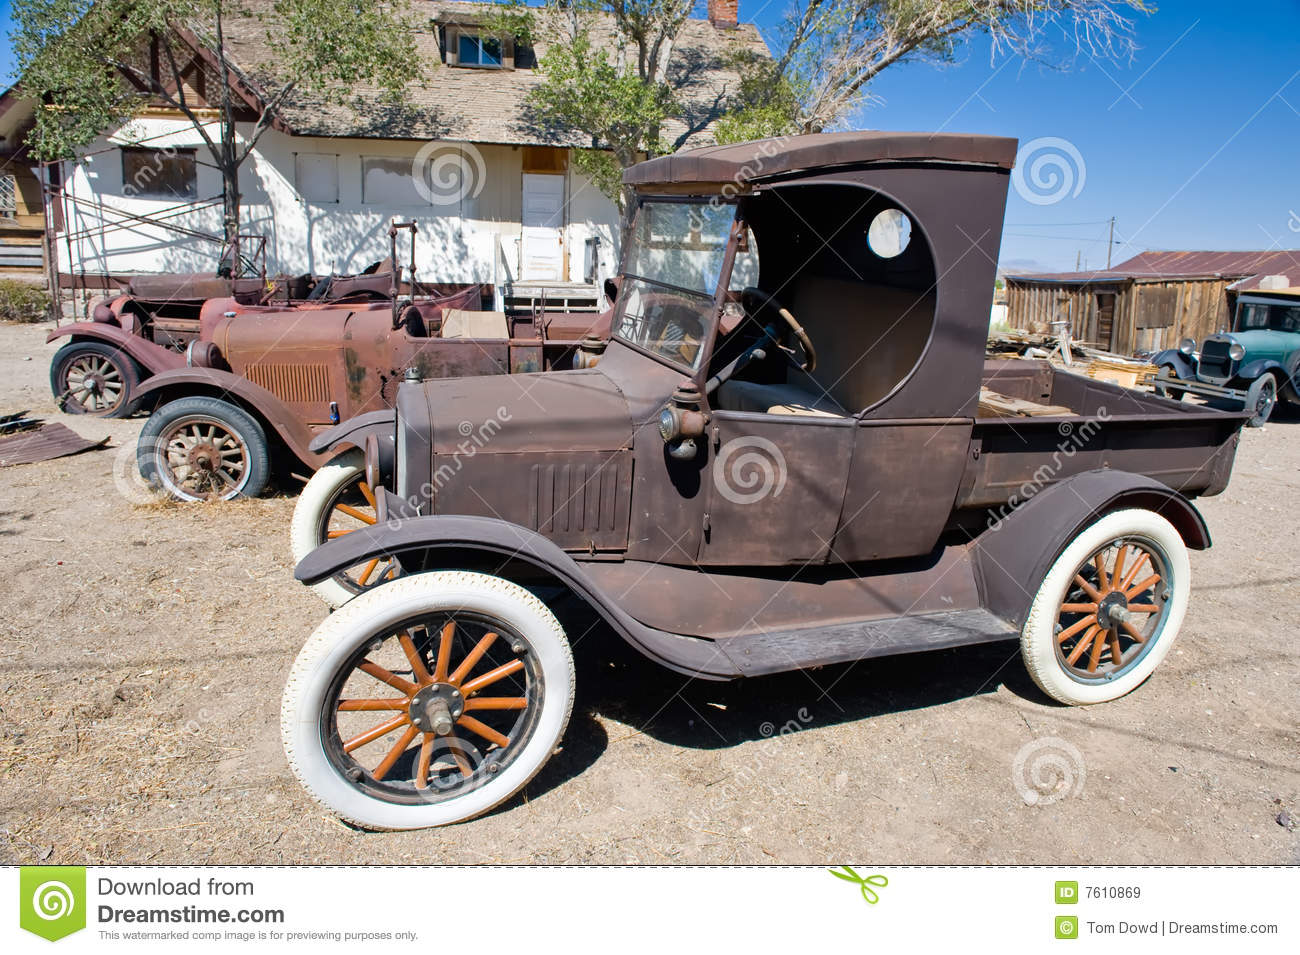 rusty vintage cars stock image image of junk vintage 7610869. Black Bedroom Furniture Sets. Home Design Ideas